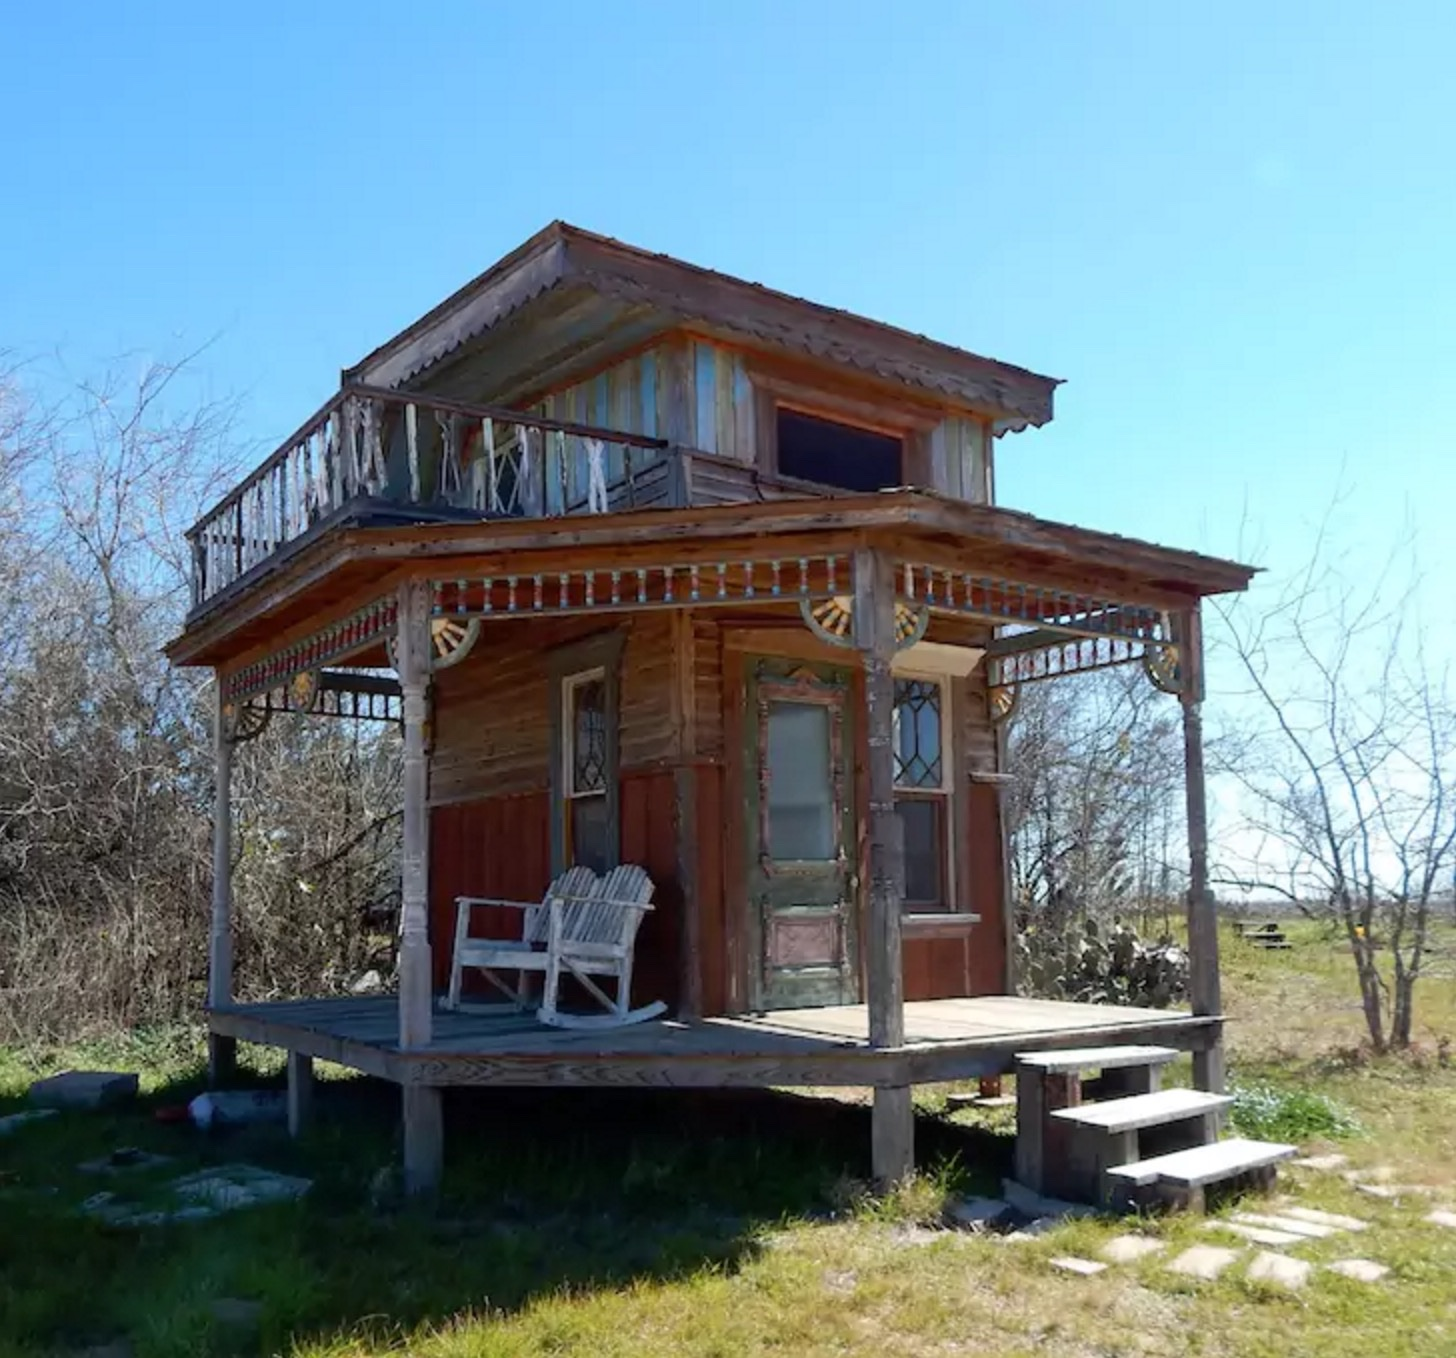 Apartments For Sale Texas: Gingered Swan Tiny Texas House